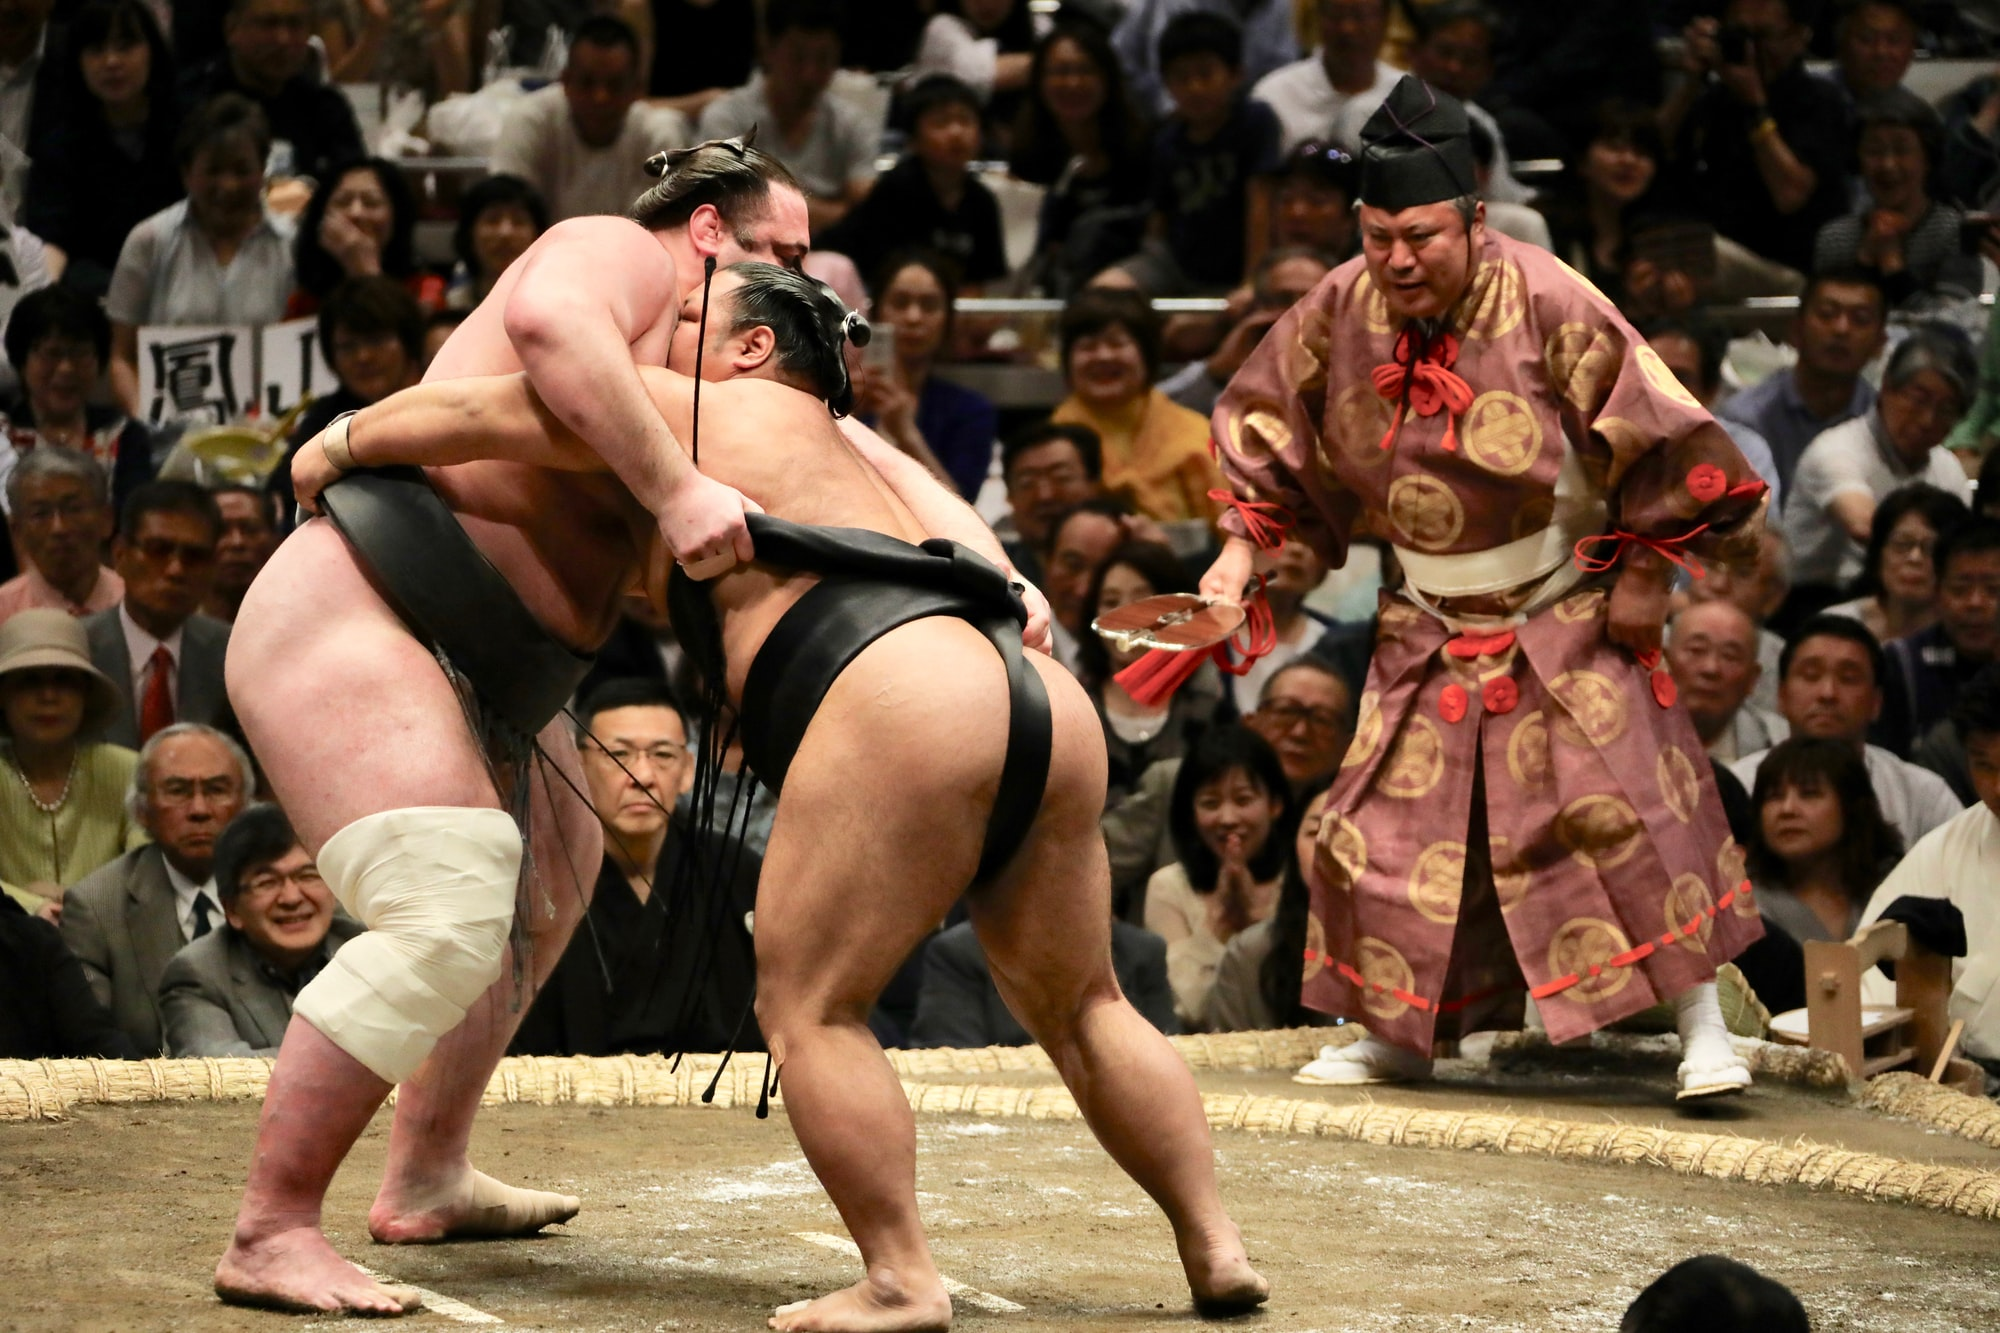 Sumo Wrestler's Weight Loss Secret